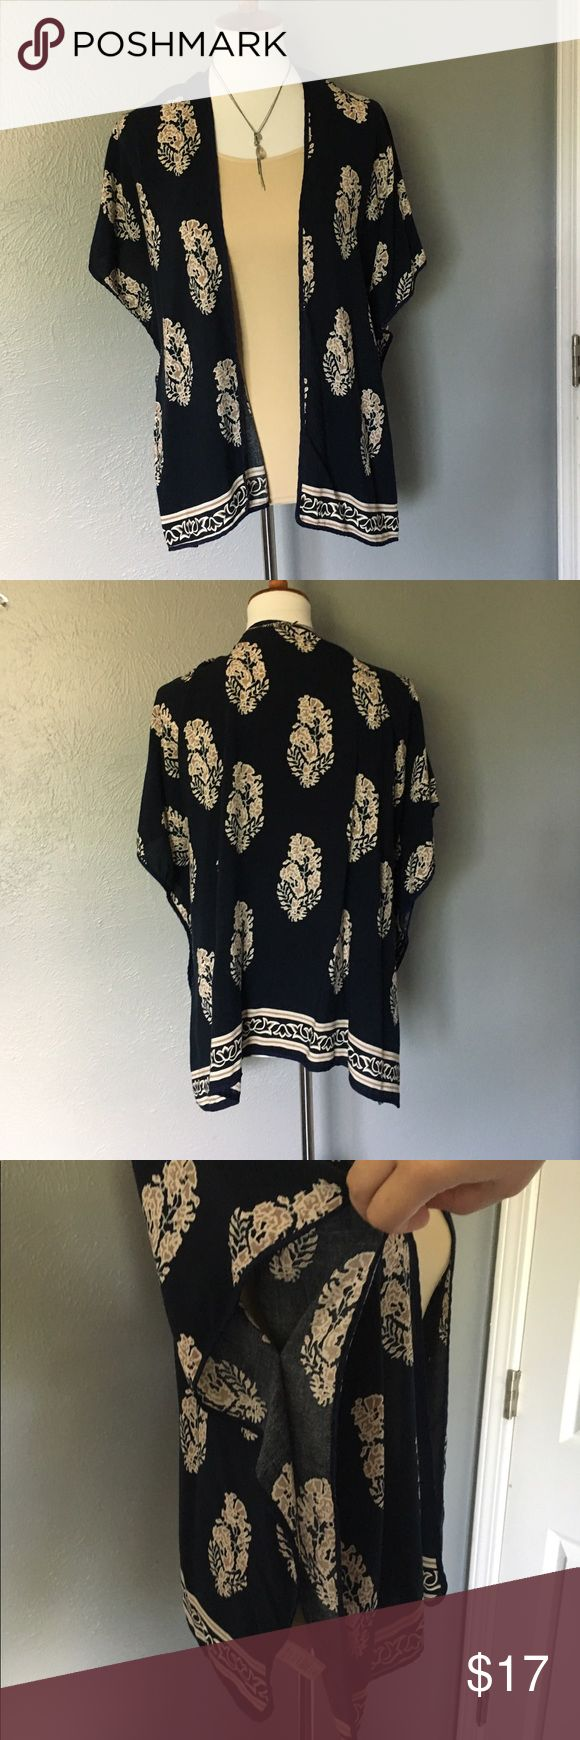 """💥Blue Kimono, tunic, cover up, short sleeved Dark blue/ cream short sleeve kimono.  This beautiful cover up goes with everything!  No visible wear- excellent condition!  Is open on the sides.  One size, because of the design it will fit a variety of sizes.  Length: 26"""", width: 29""""       👚 Check out more tops in my closet 👚                                 💥 To Post Office same/ next day 💥                                        🔥 Smoke-free home 🔥 Tops Tunics"""